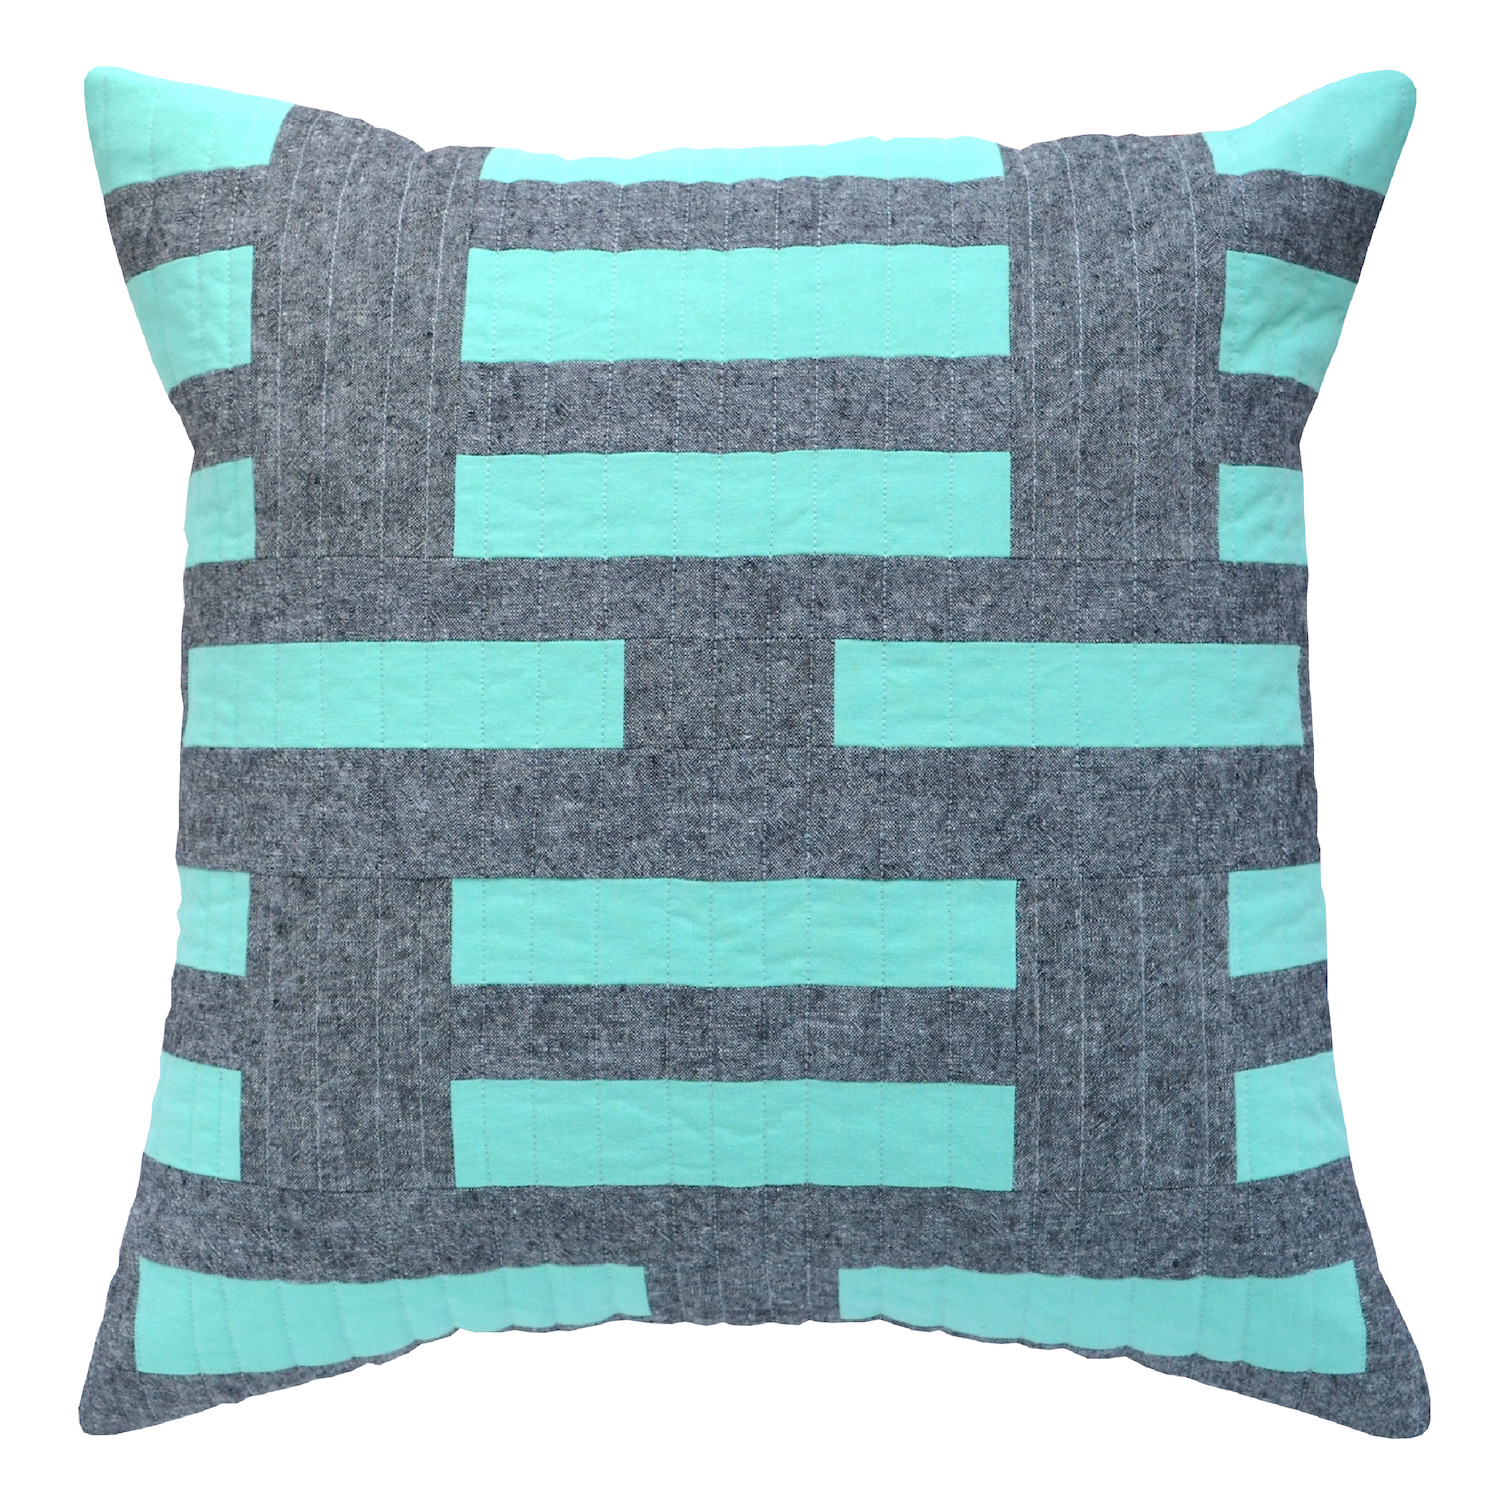 clothlab_modern quilted pillows_Tulum.jpg